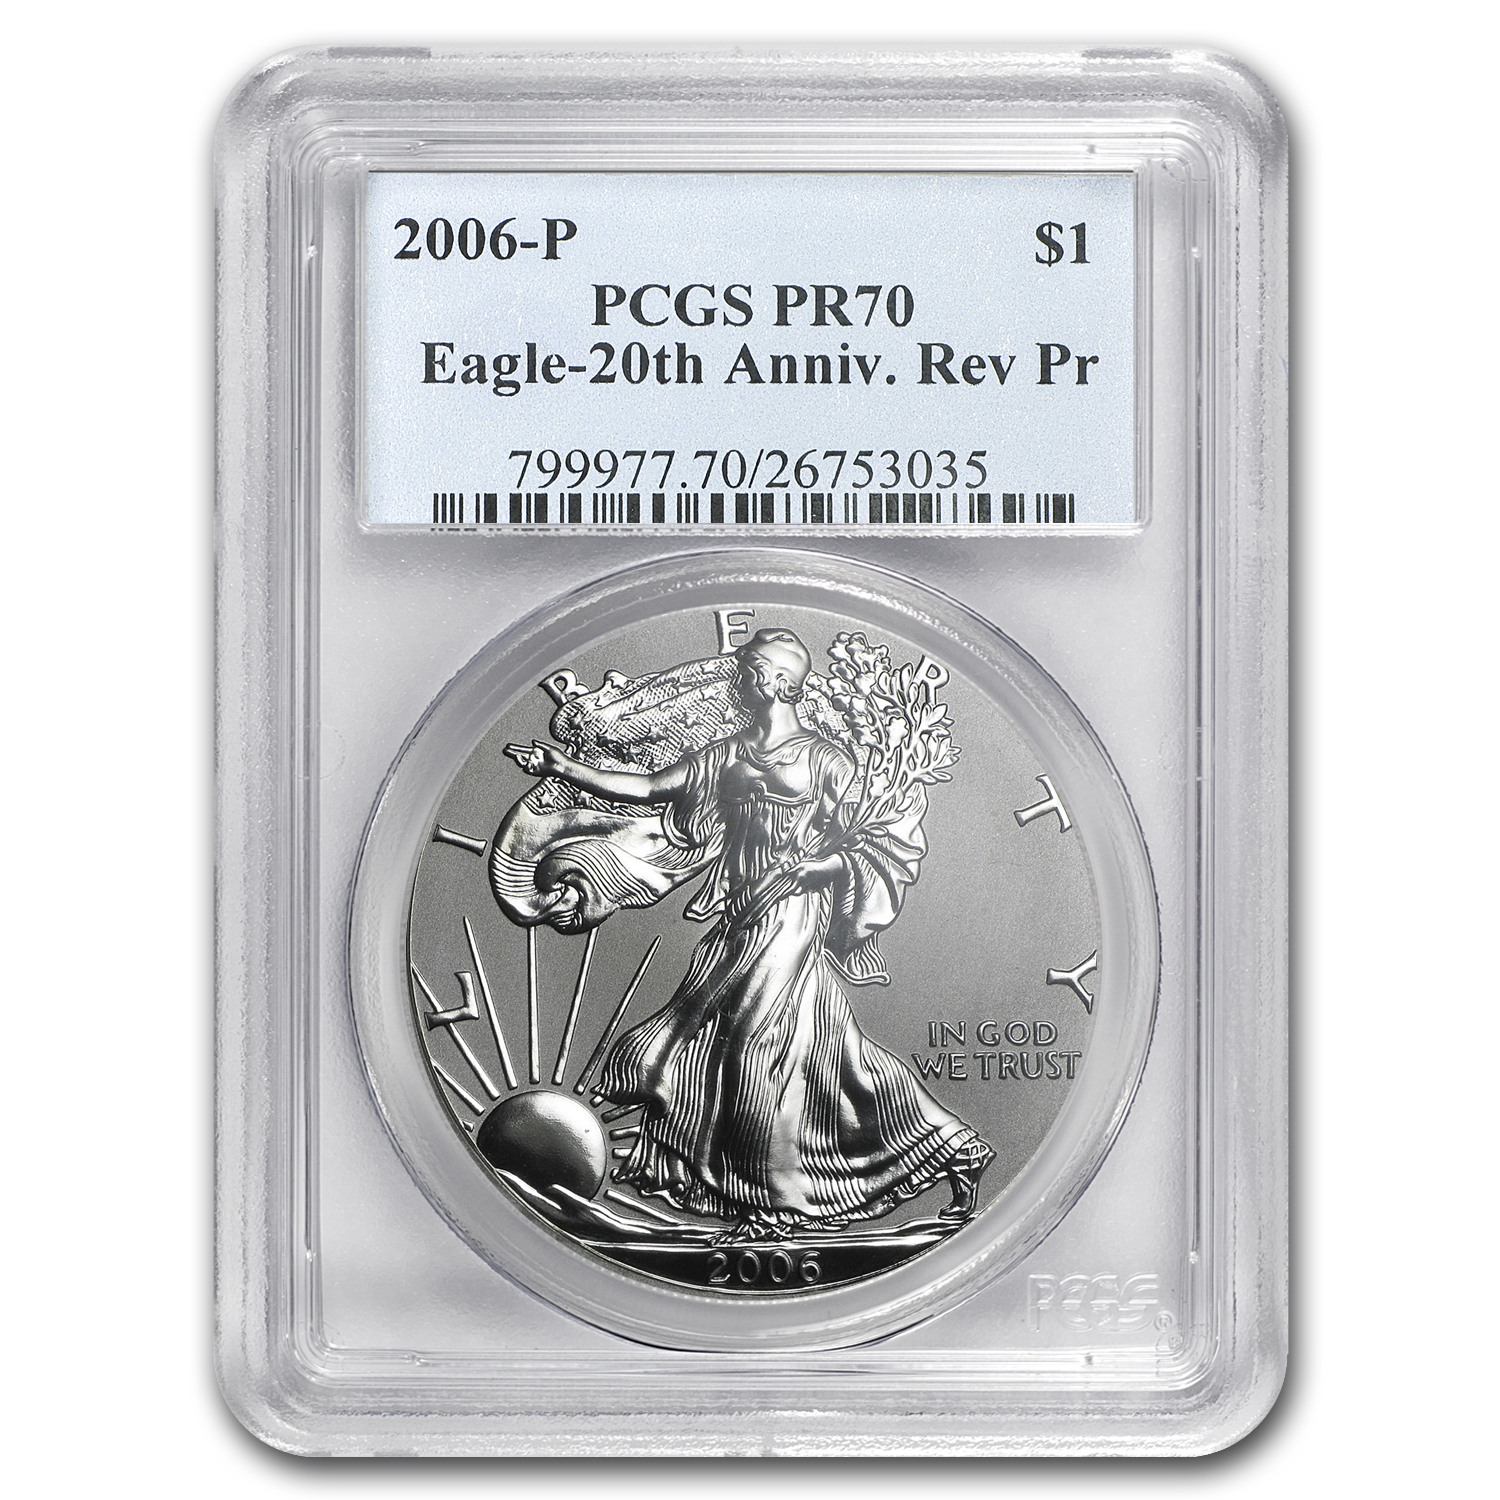 2006-P Reverse Proof Silver Eagle PR-70 PCGS (20th Anniv)